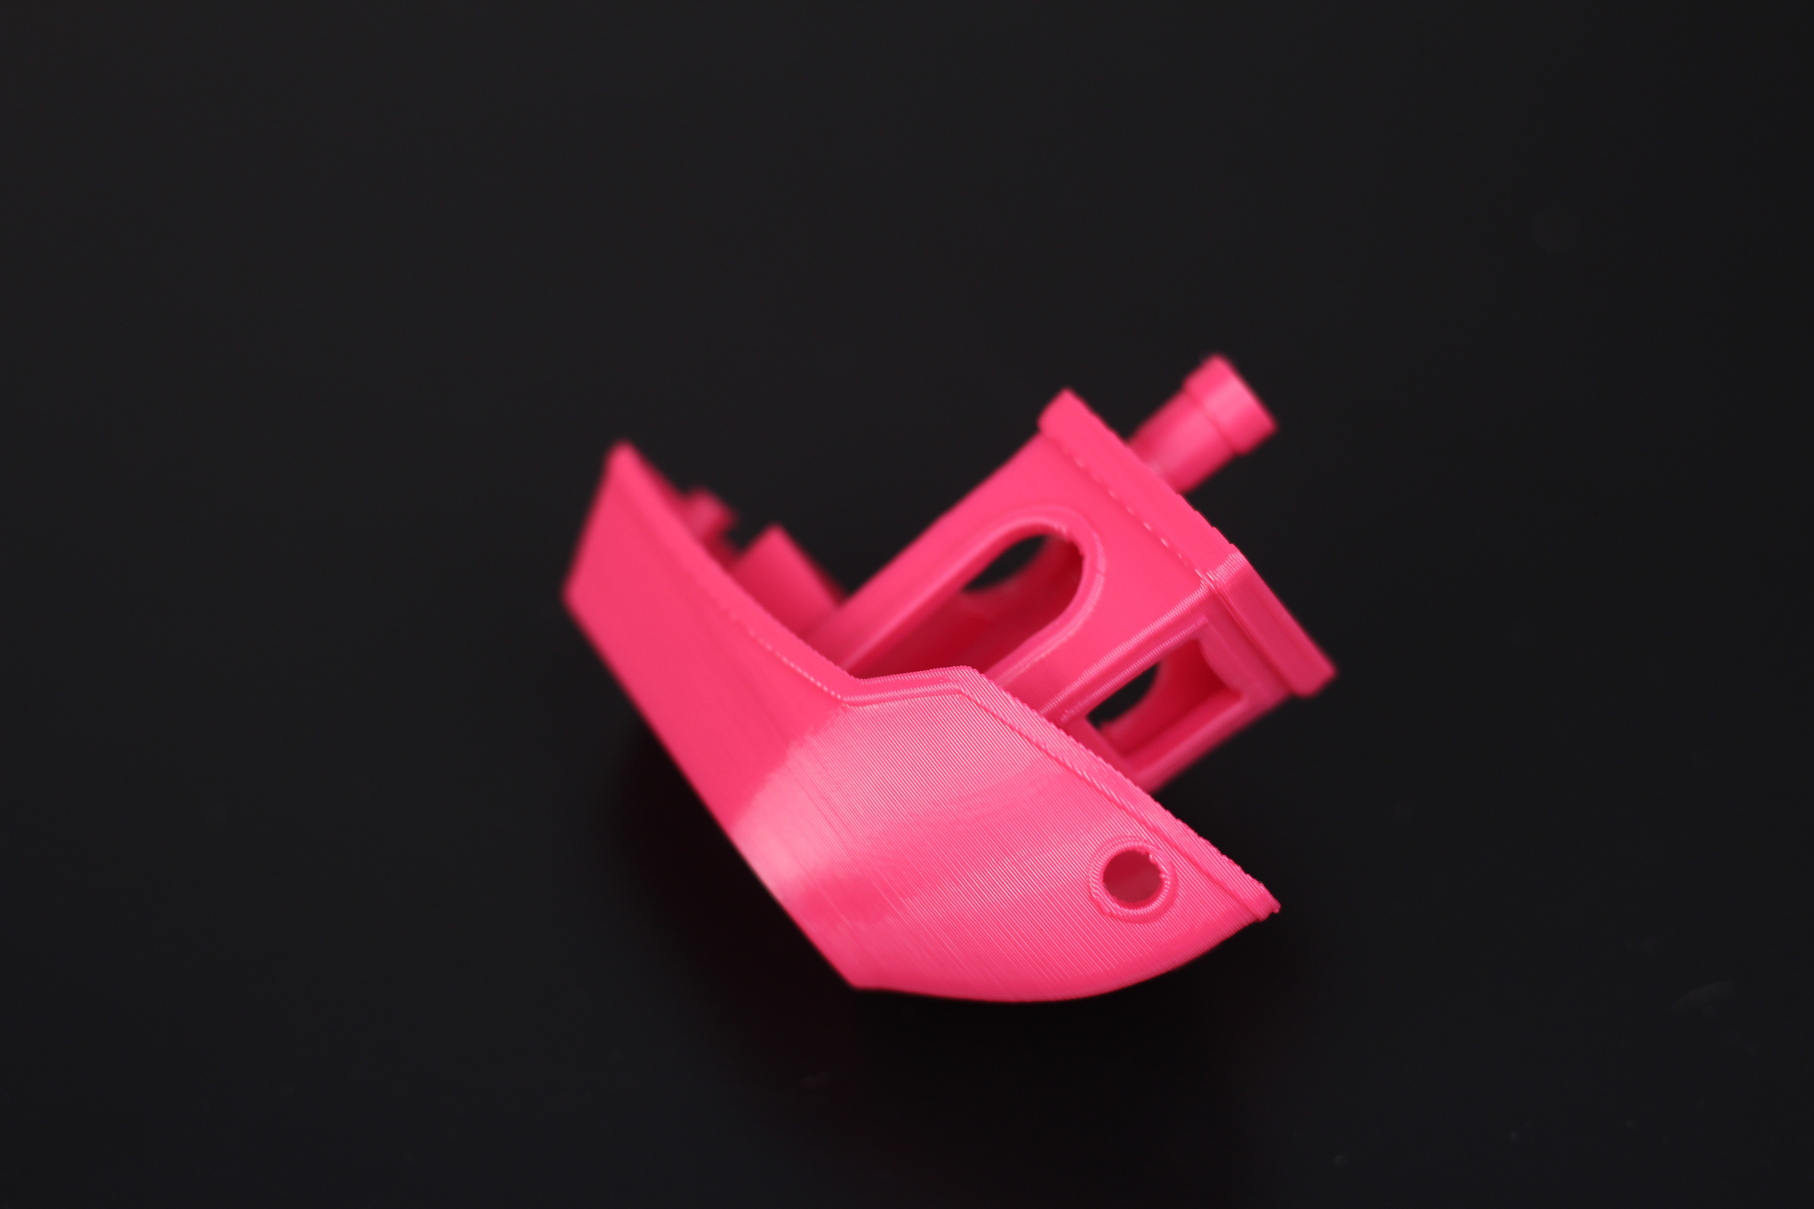 Ender 3 Pro TPU 3D Benchy 5   Creality Ender 3 Max Review: Bigger equals Better?